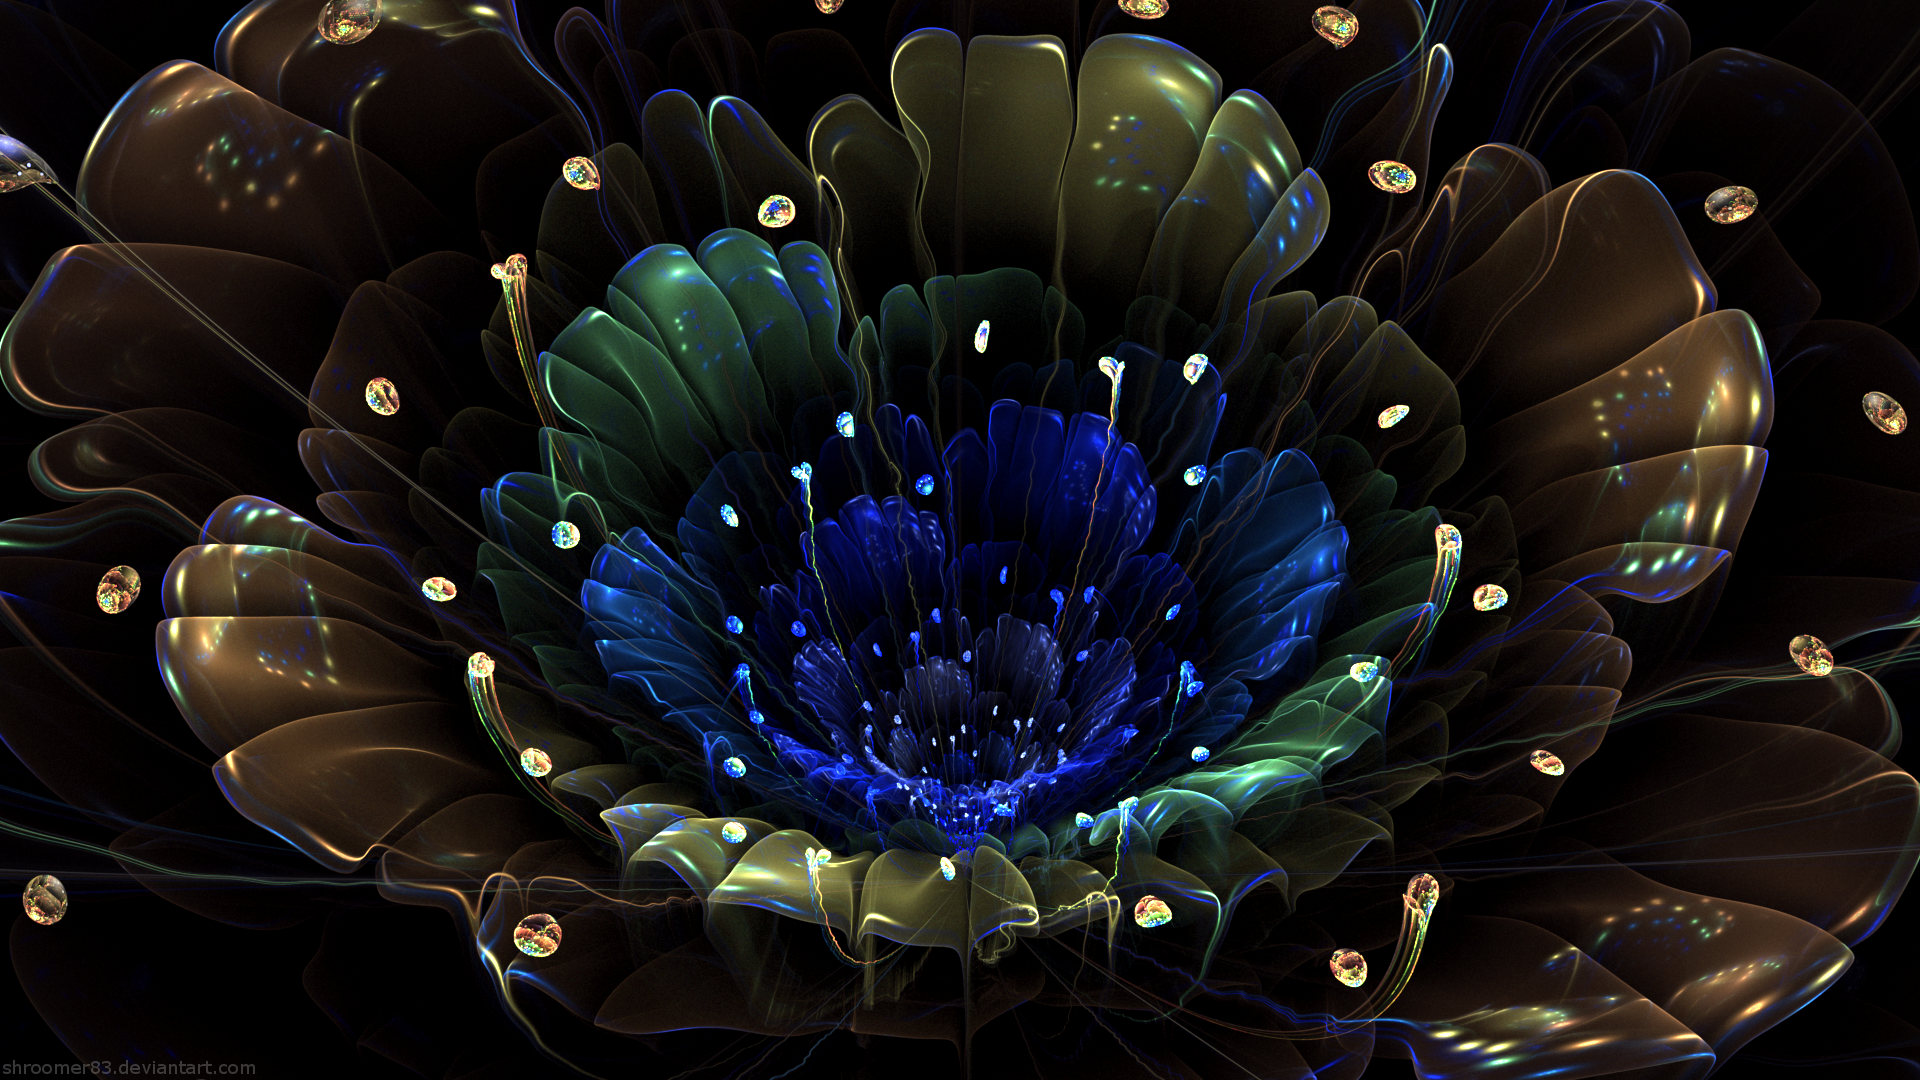 Abstract Flower Hd Wallpaper Background Image 1920x1080 Id